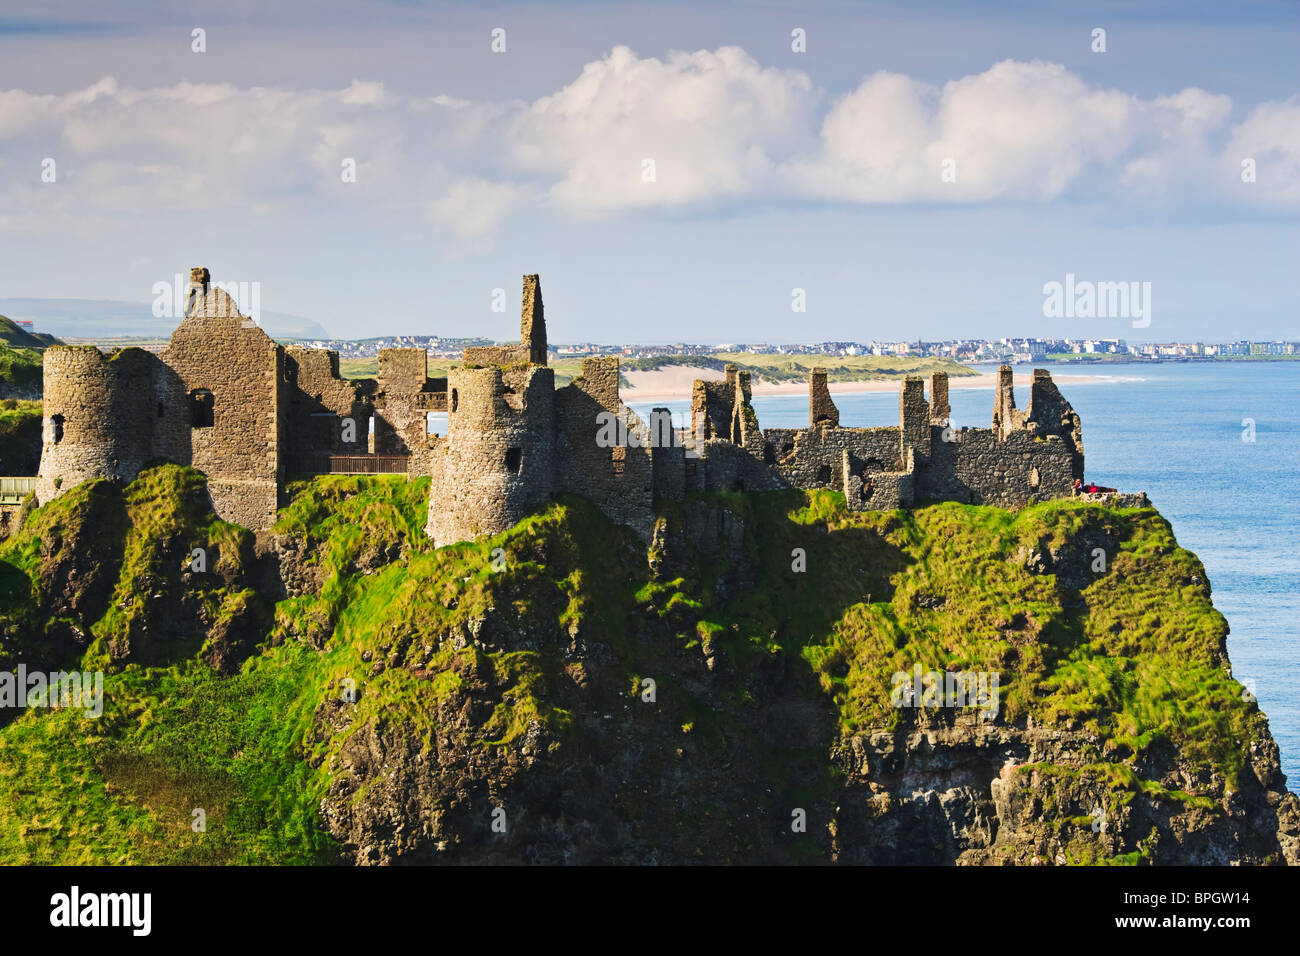 Dunluce Castle, original home of Sorley Boy MacDonnell, overlooking the north County Antrim coast, Northern Ireland - Stock Image